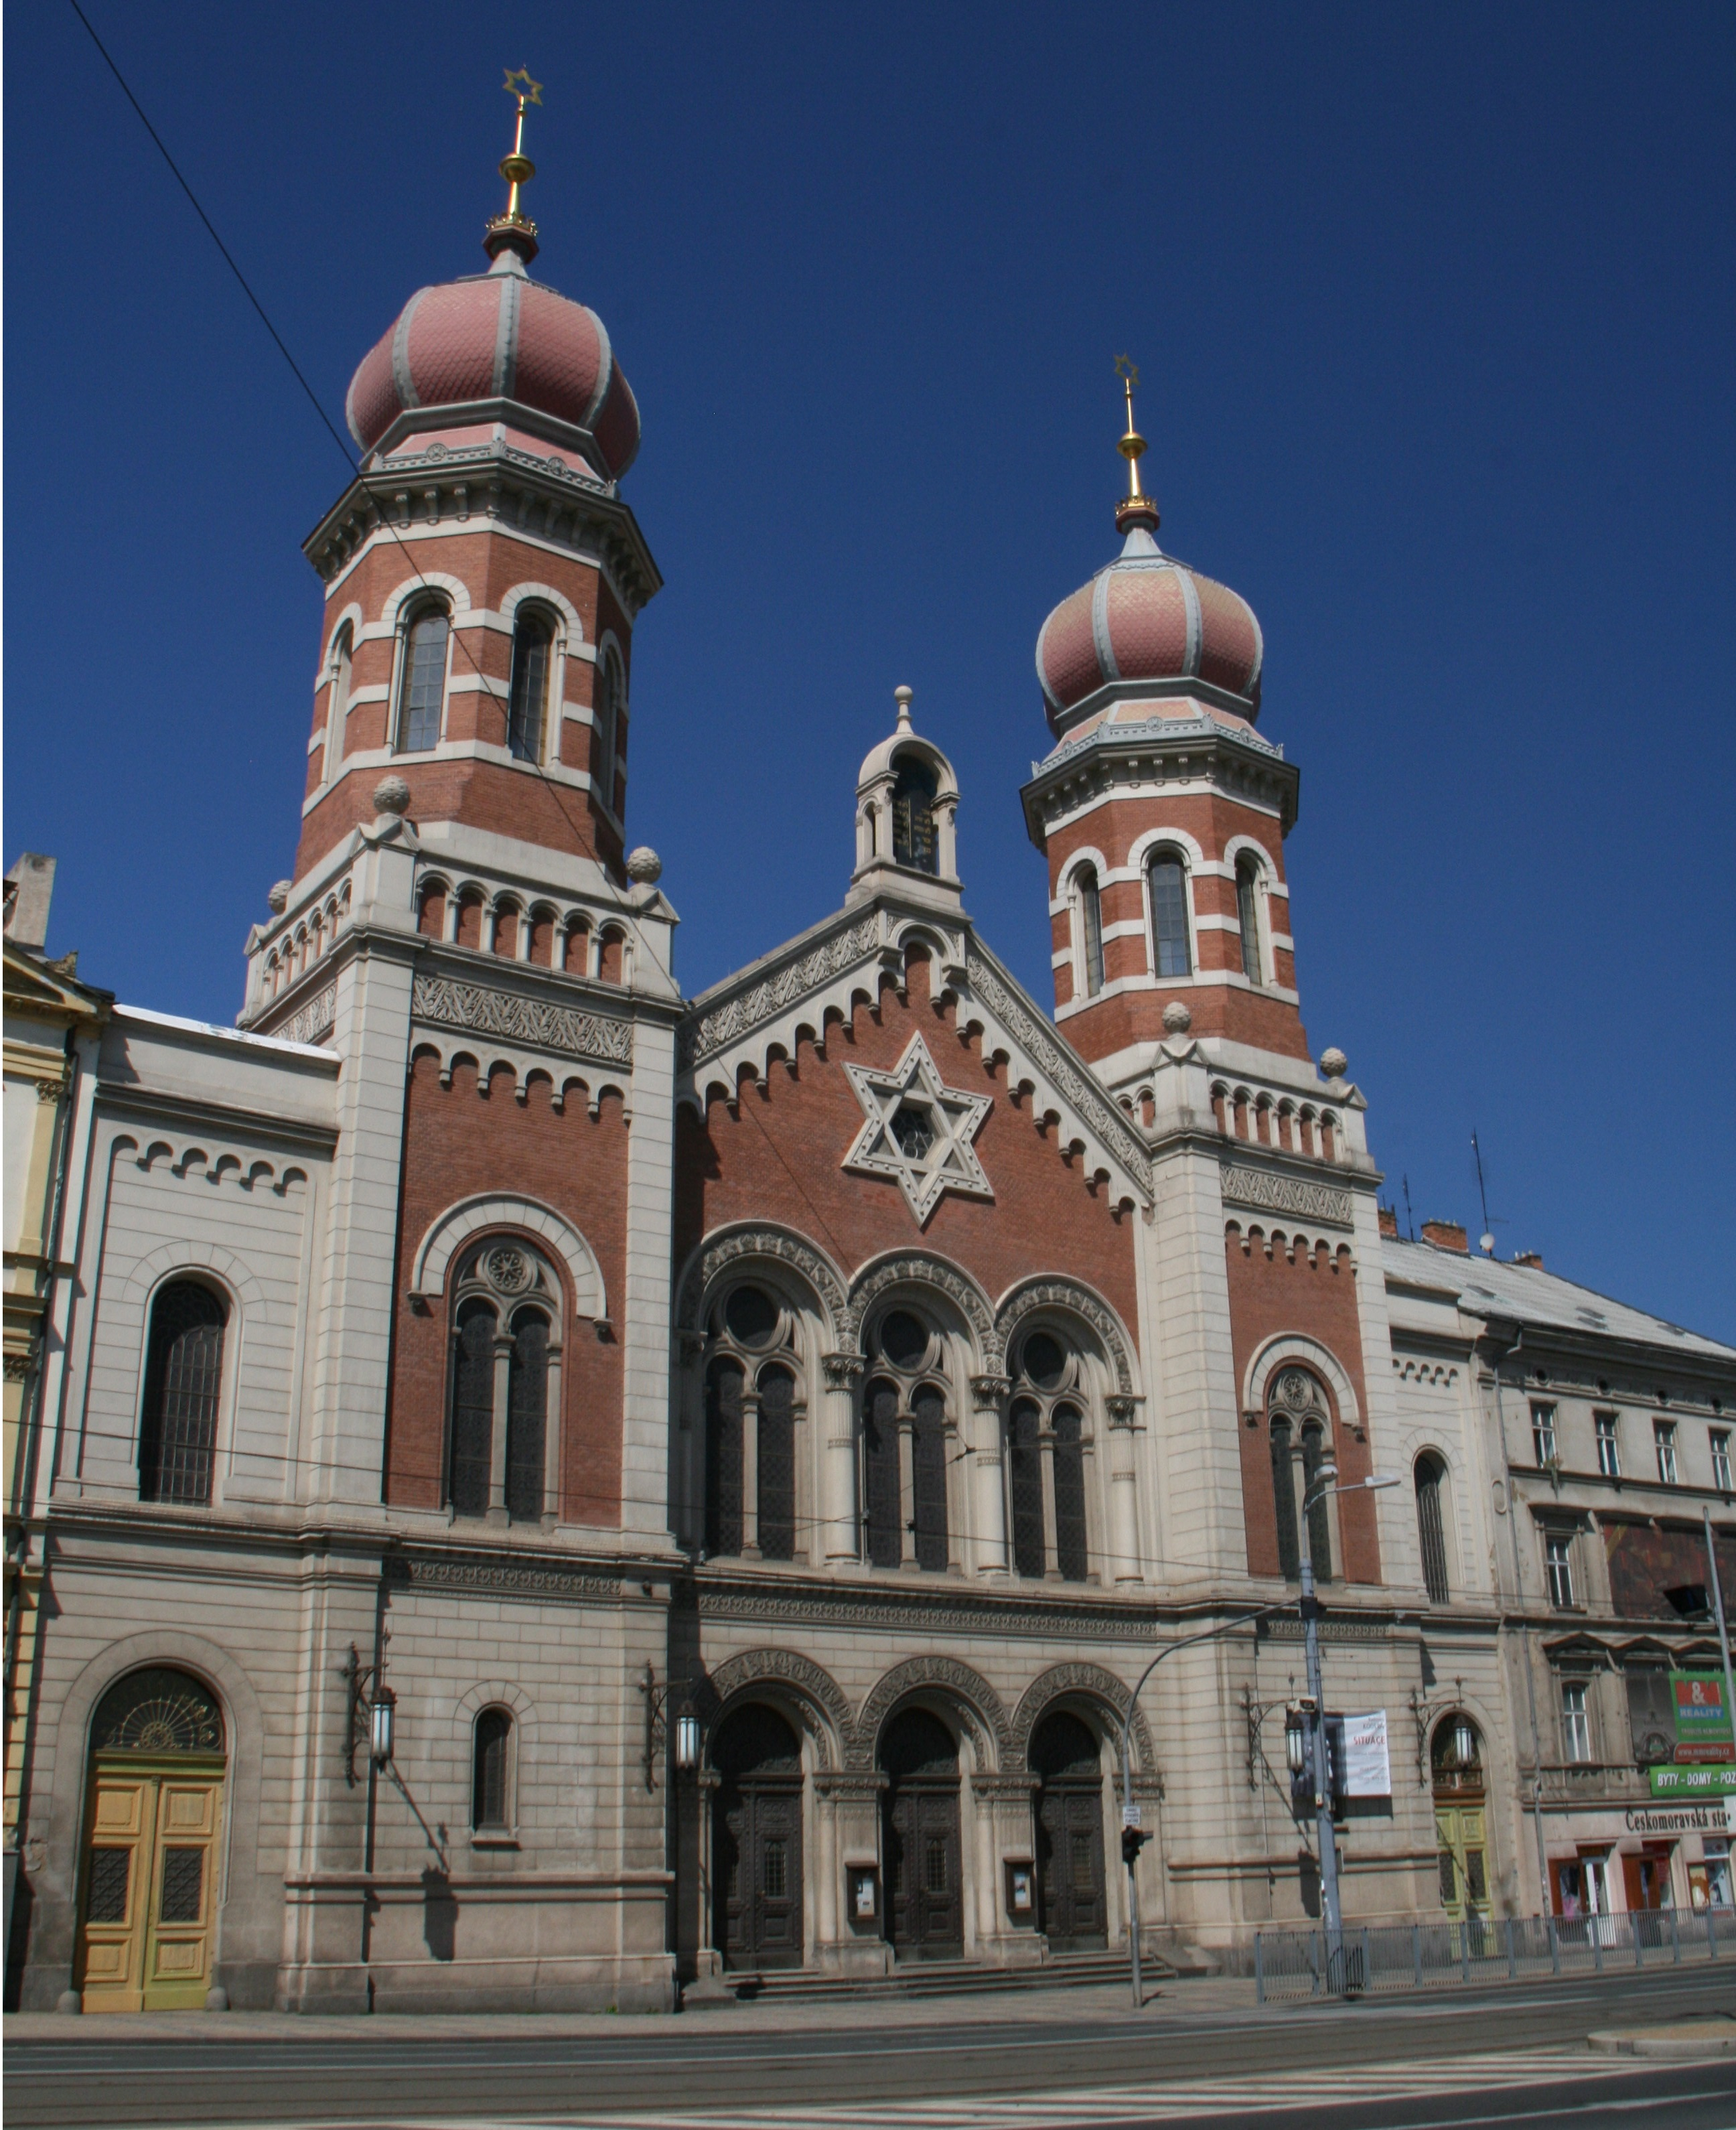 http://upload.wikimedia.org/wikipedia/commons/4/42/Great_Synagogue_in_Pilsen-2010.jpg